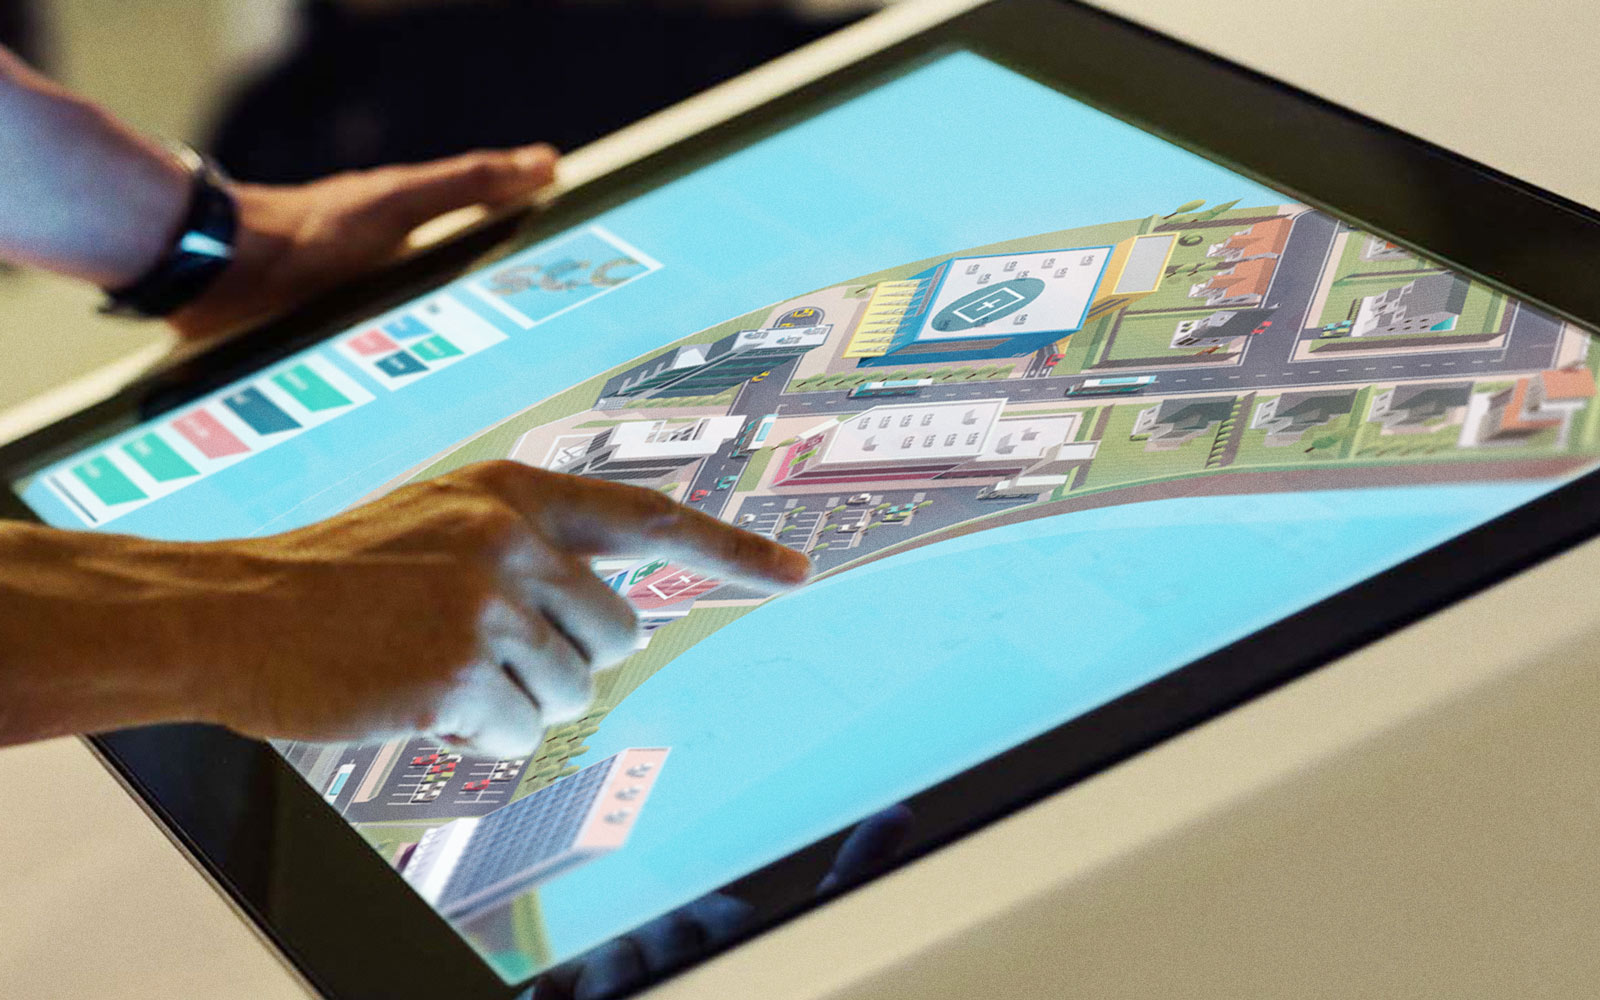 person interacting with digital touchscreen map